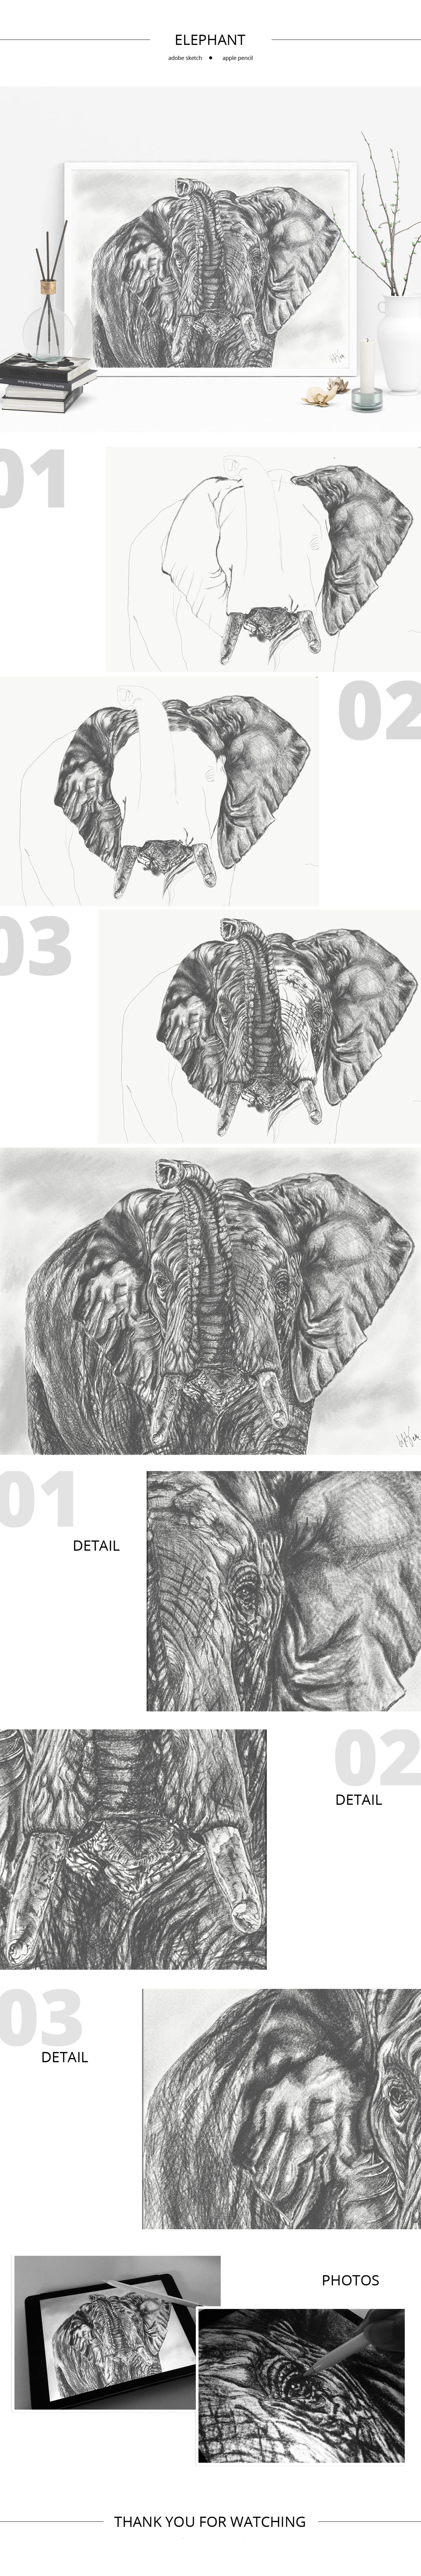 Elephant sketch by Lifety